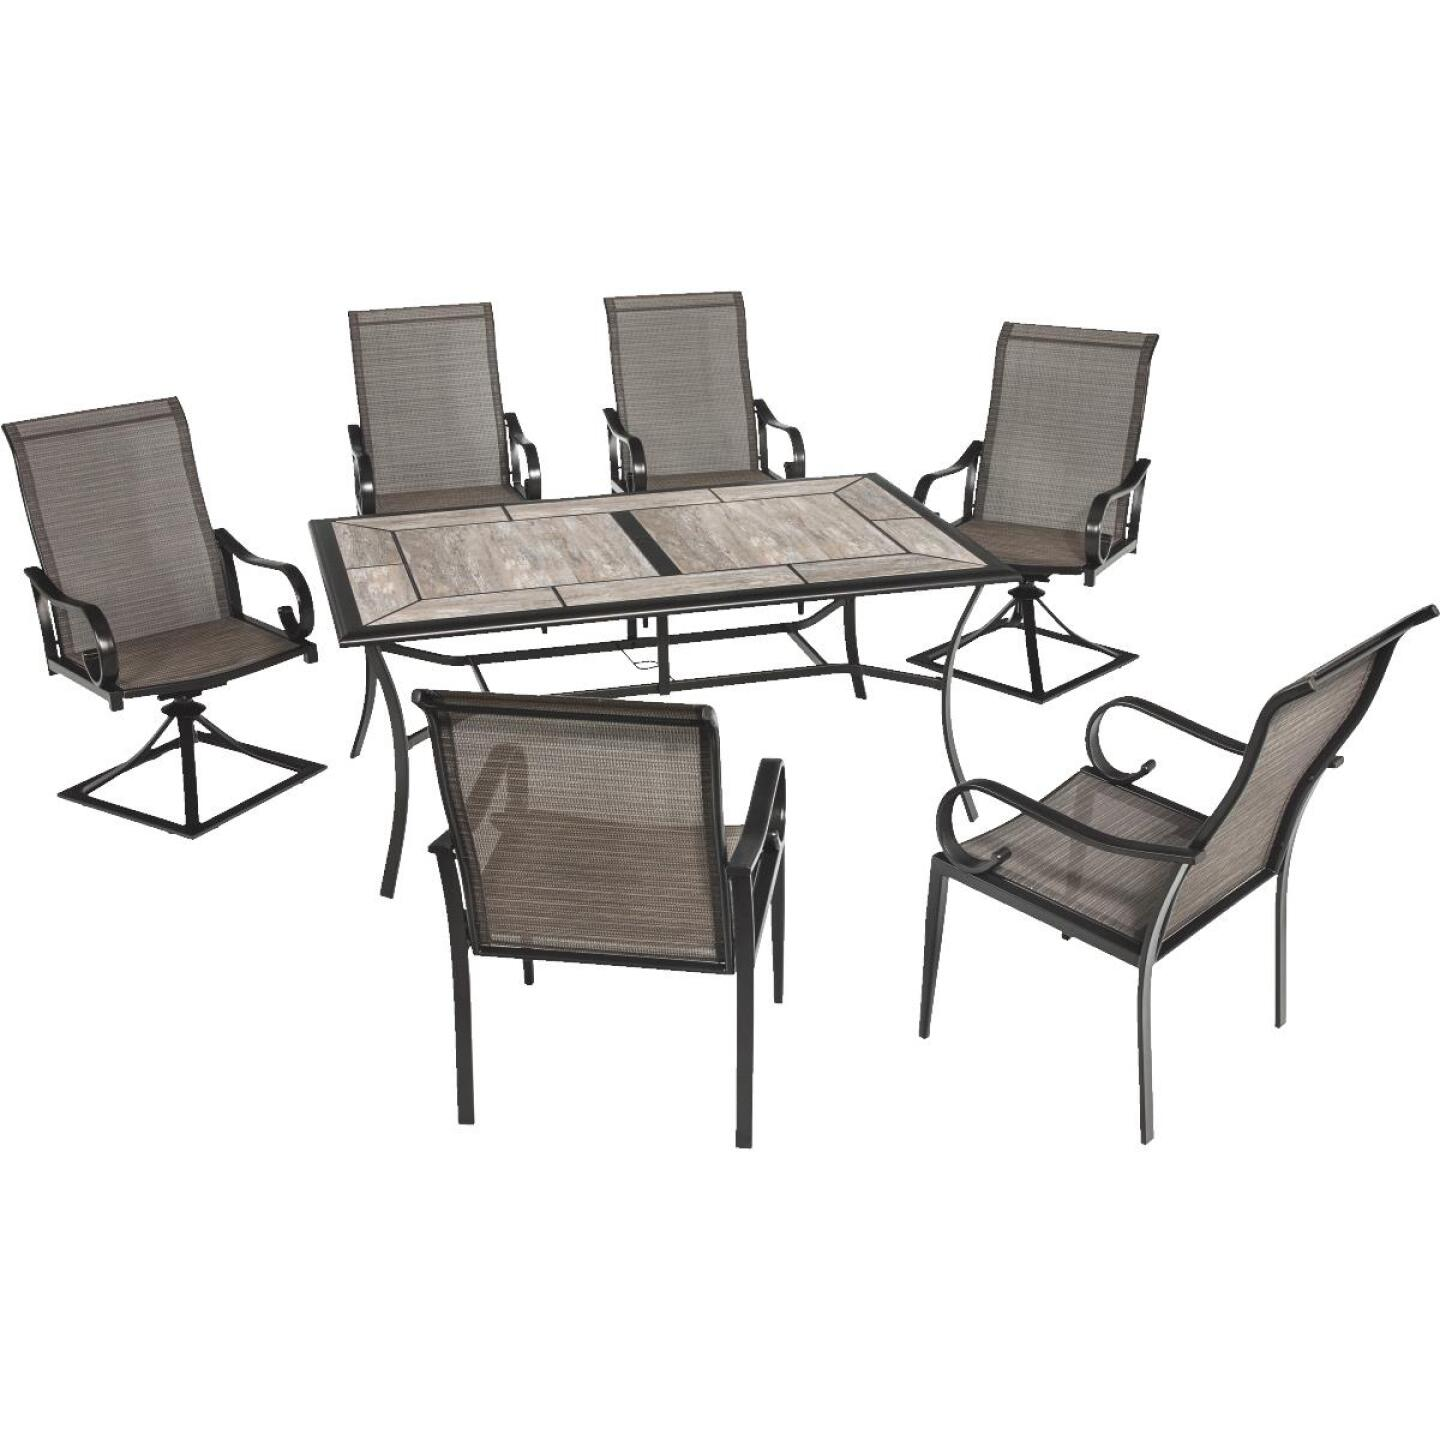 Outdoor Expressions Berkshire 7-Piece Dining Set Image 350